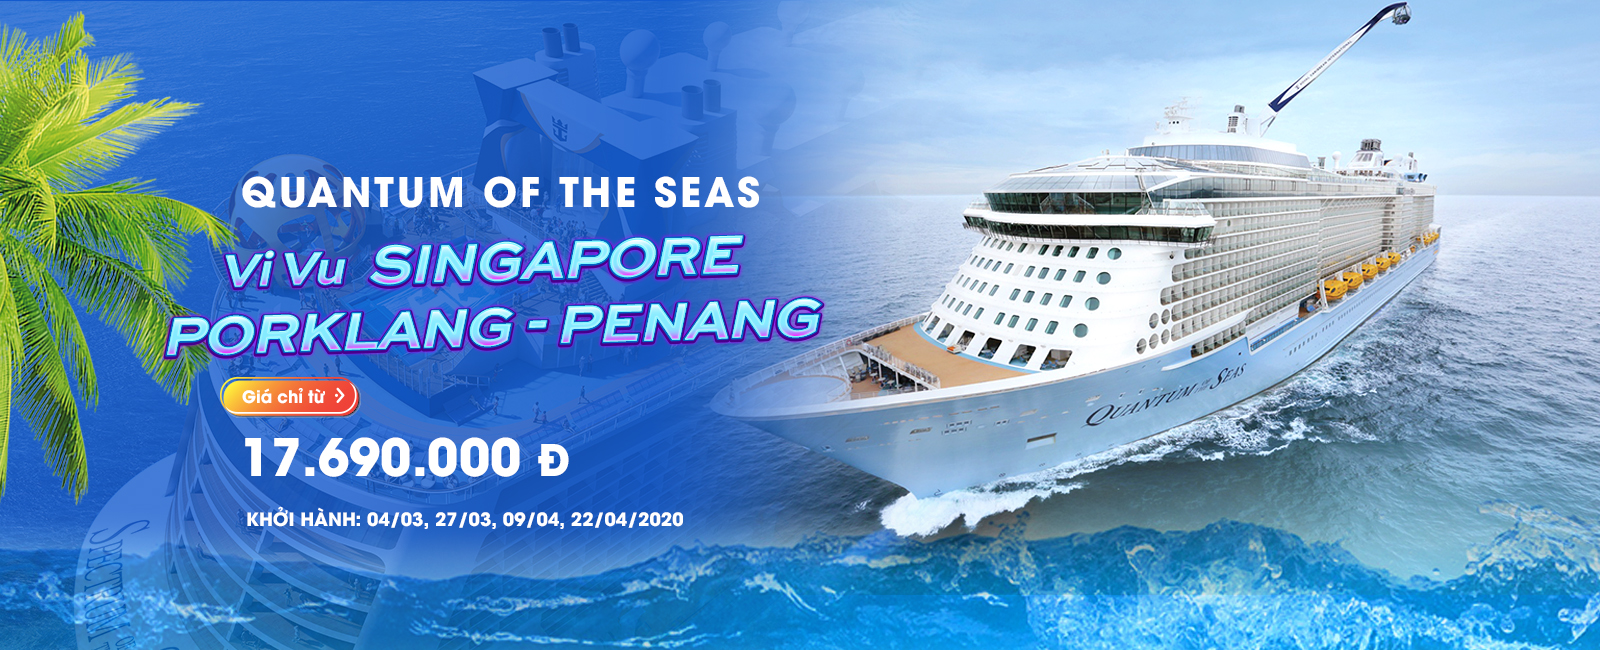 QUANTUM OF THE SEAS: VI VU SINGAPORE - PORKLANG - PENANG